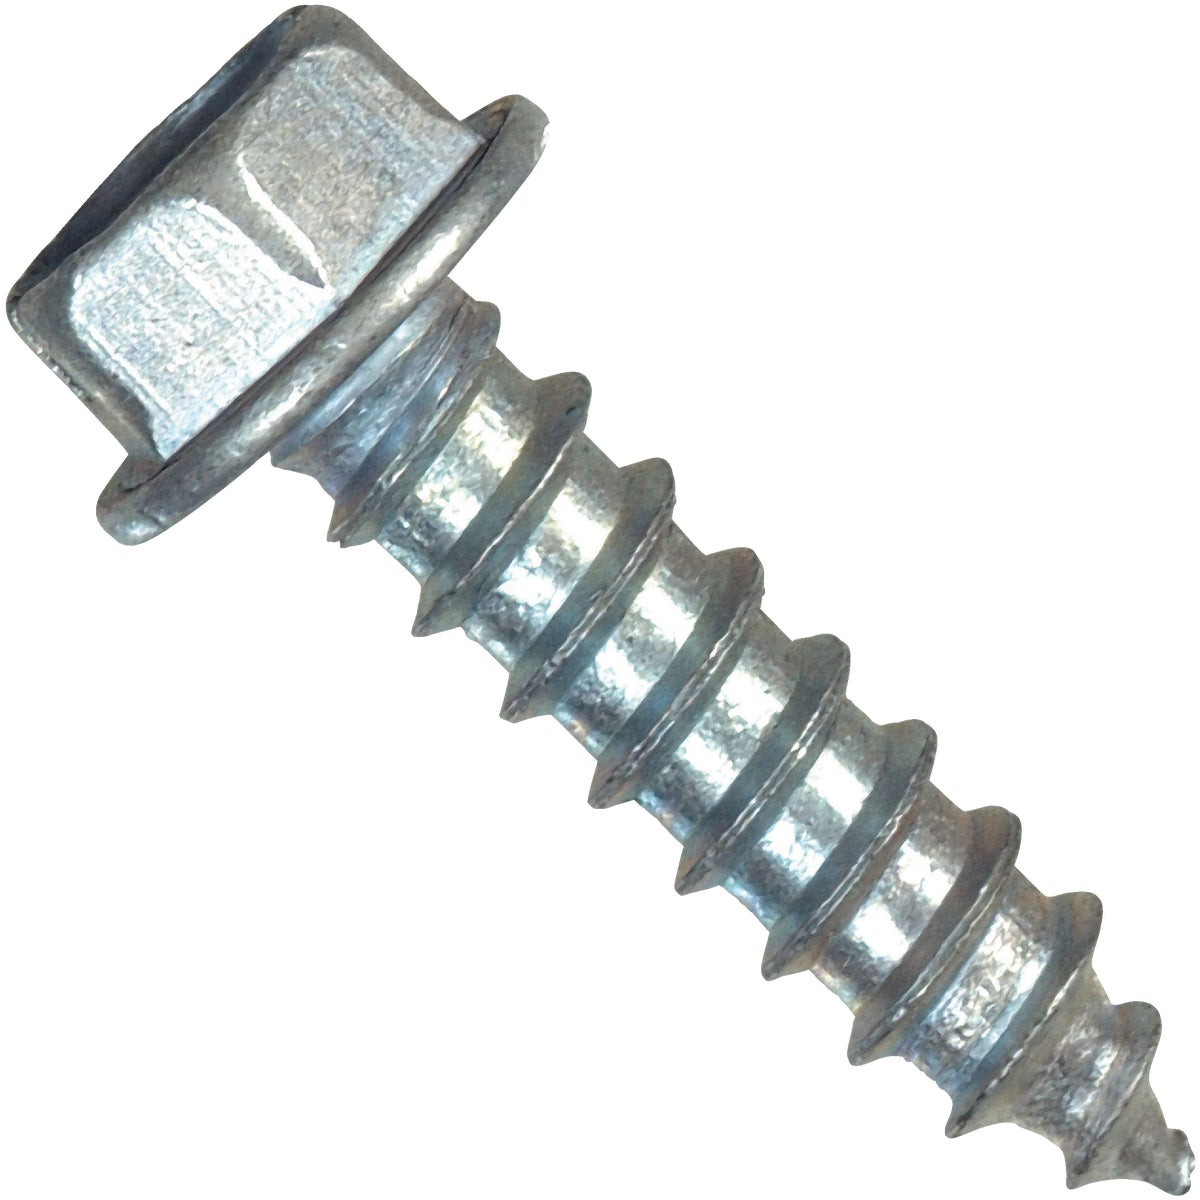 12X2 HWH SHT MTL SCREW - 70325 by Hillman Fastener